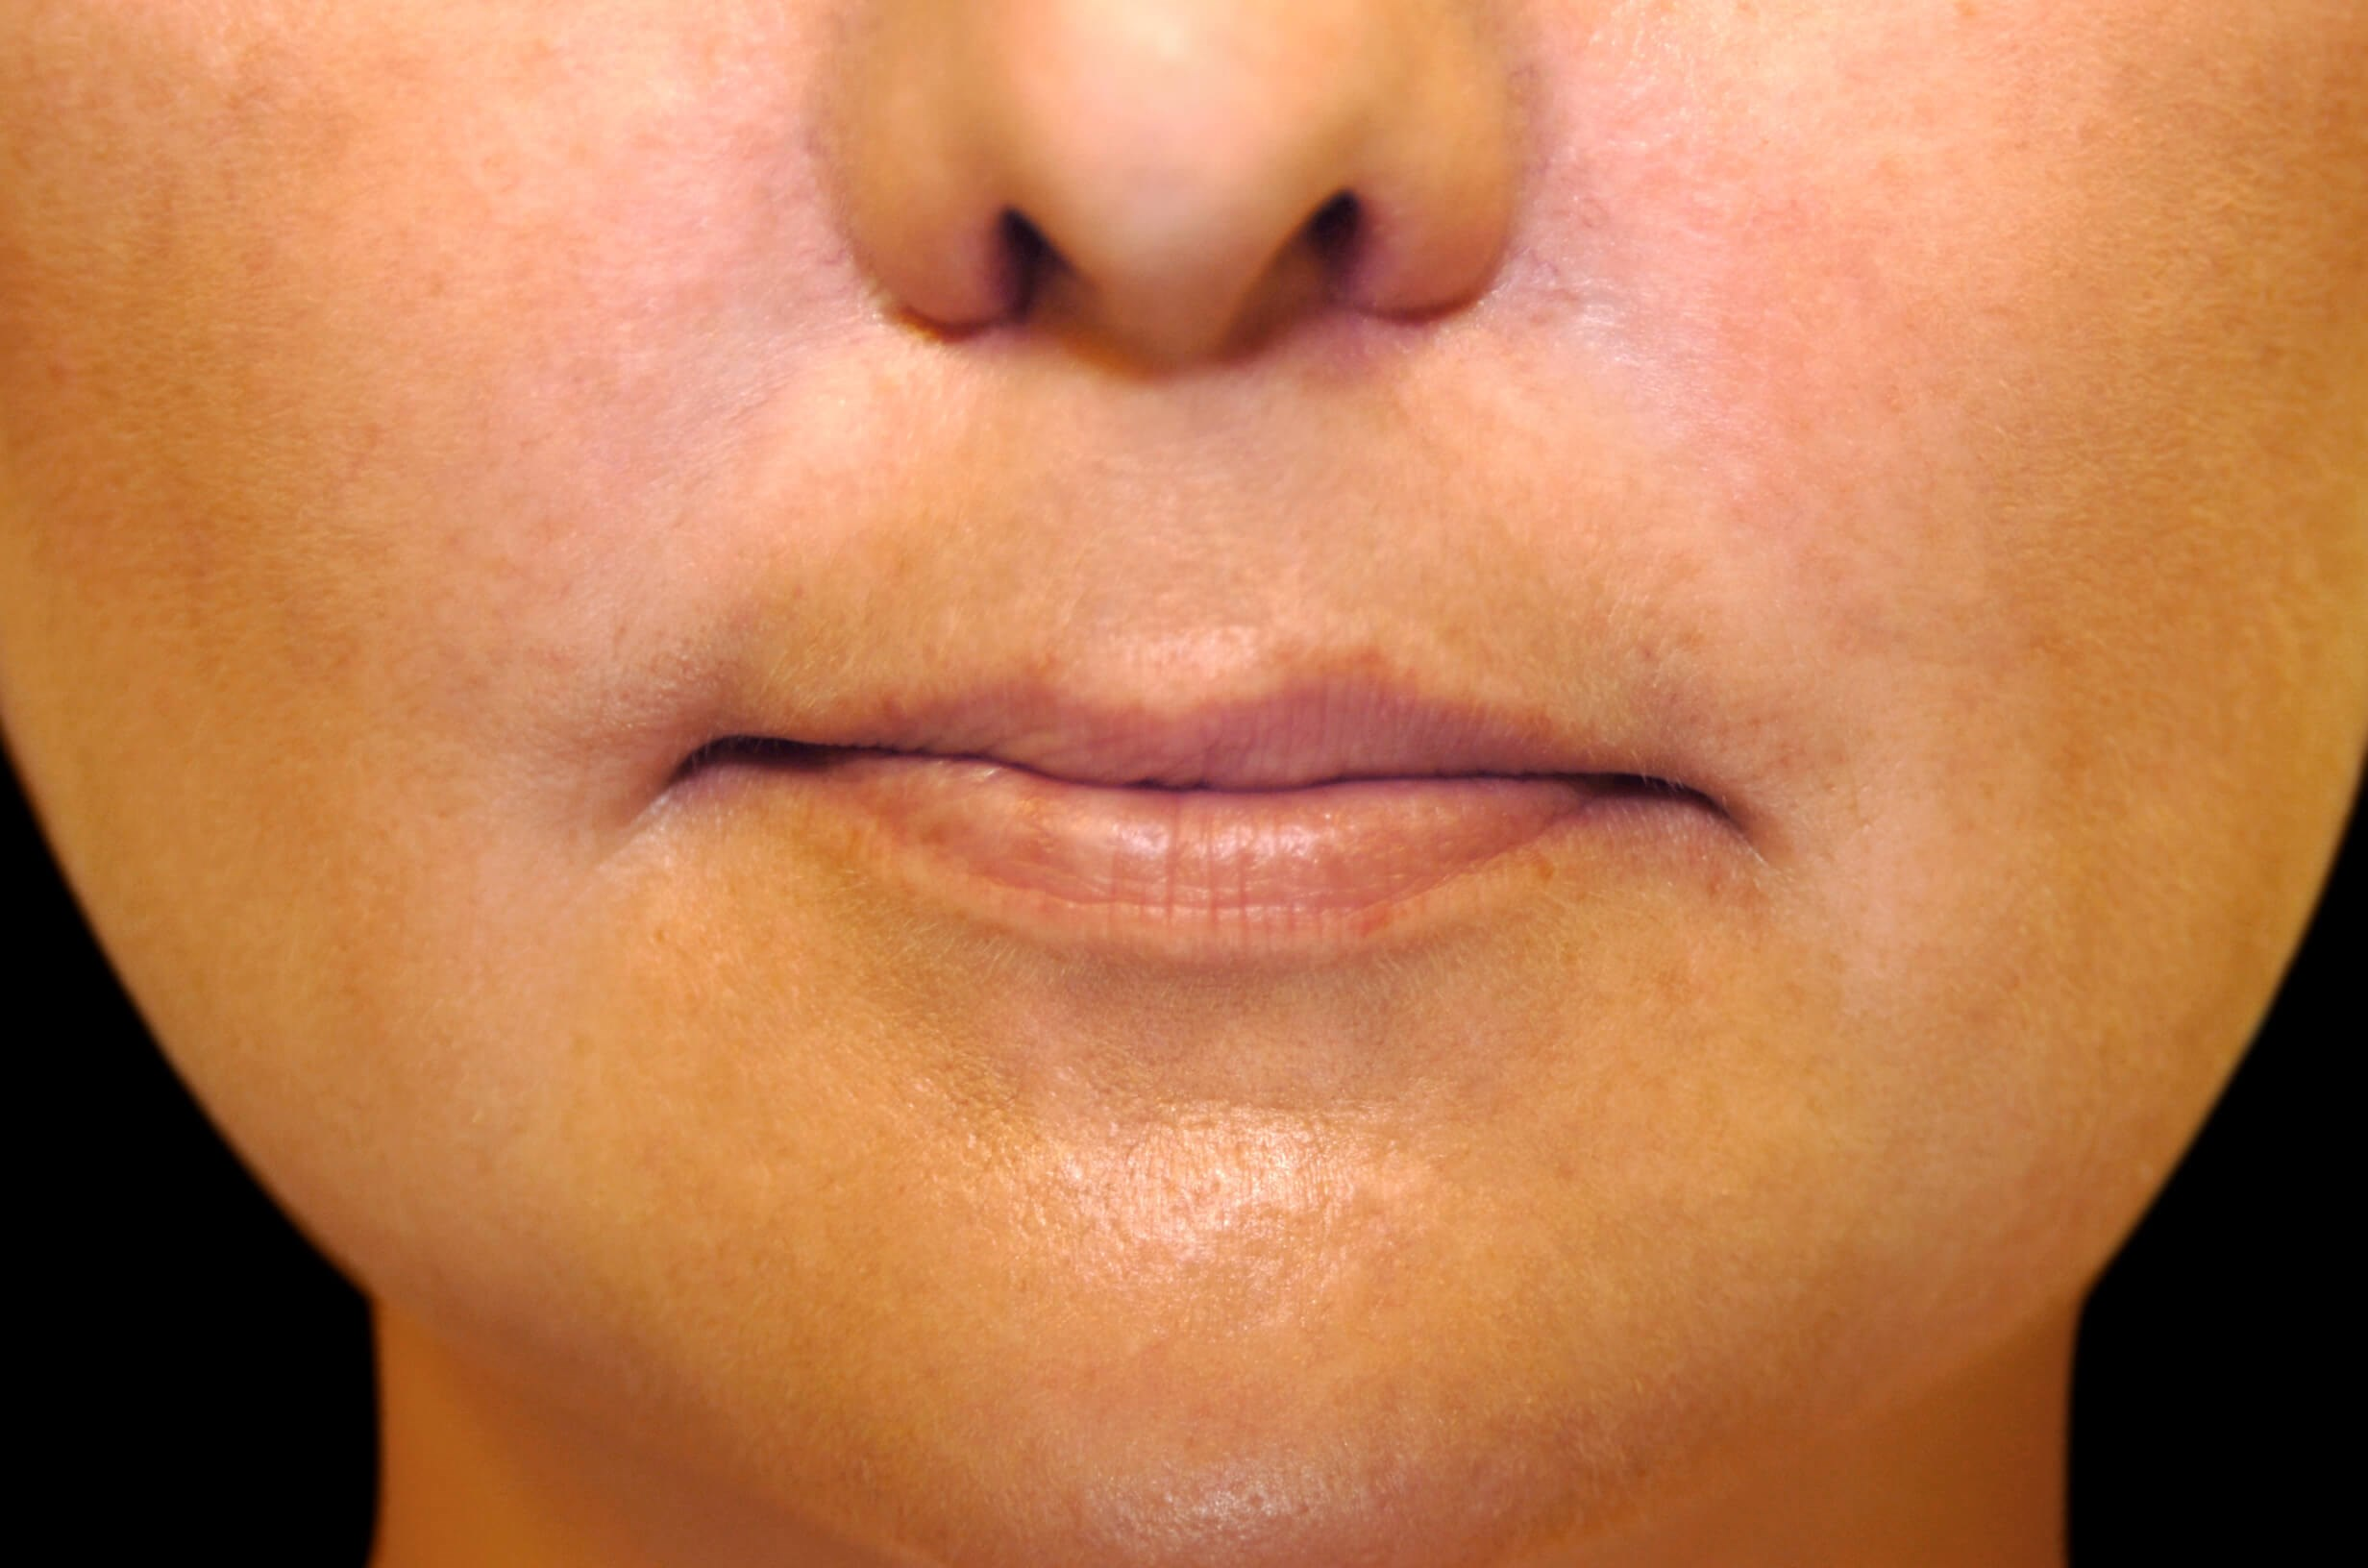 Restylane Lip Filler Before Restylane Lip Filler